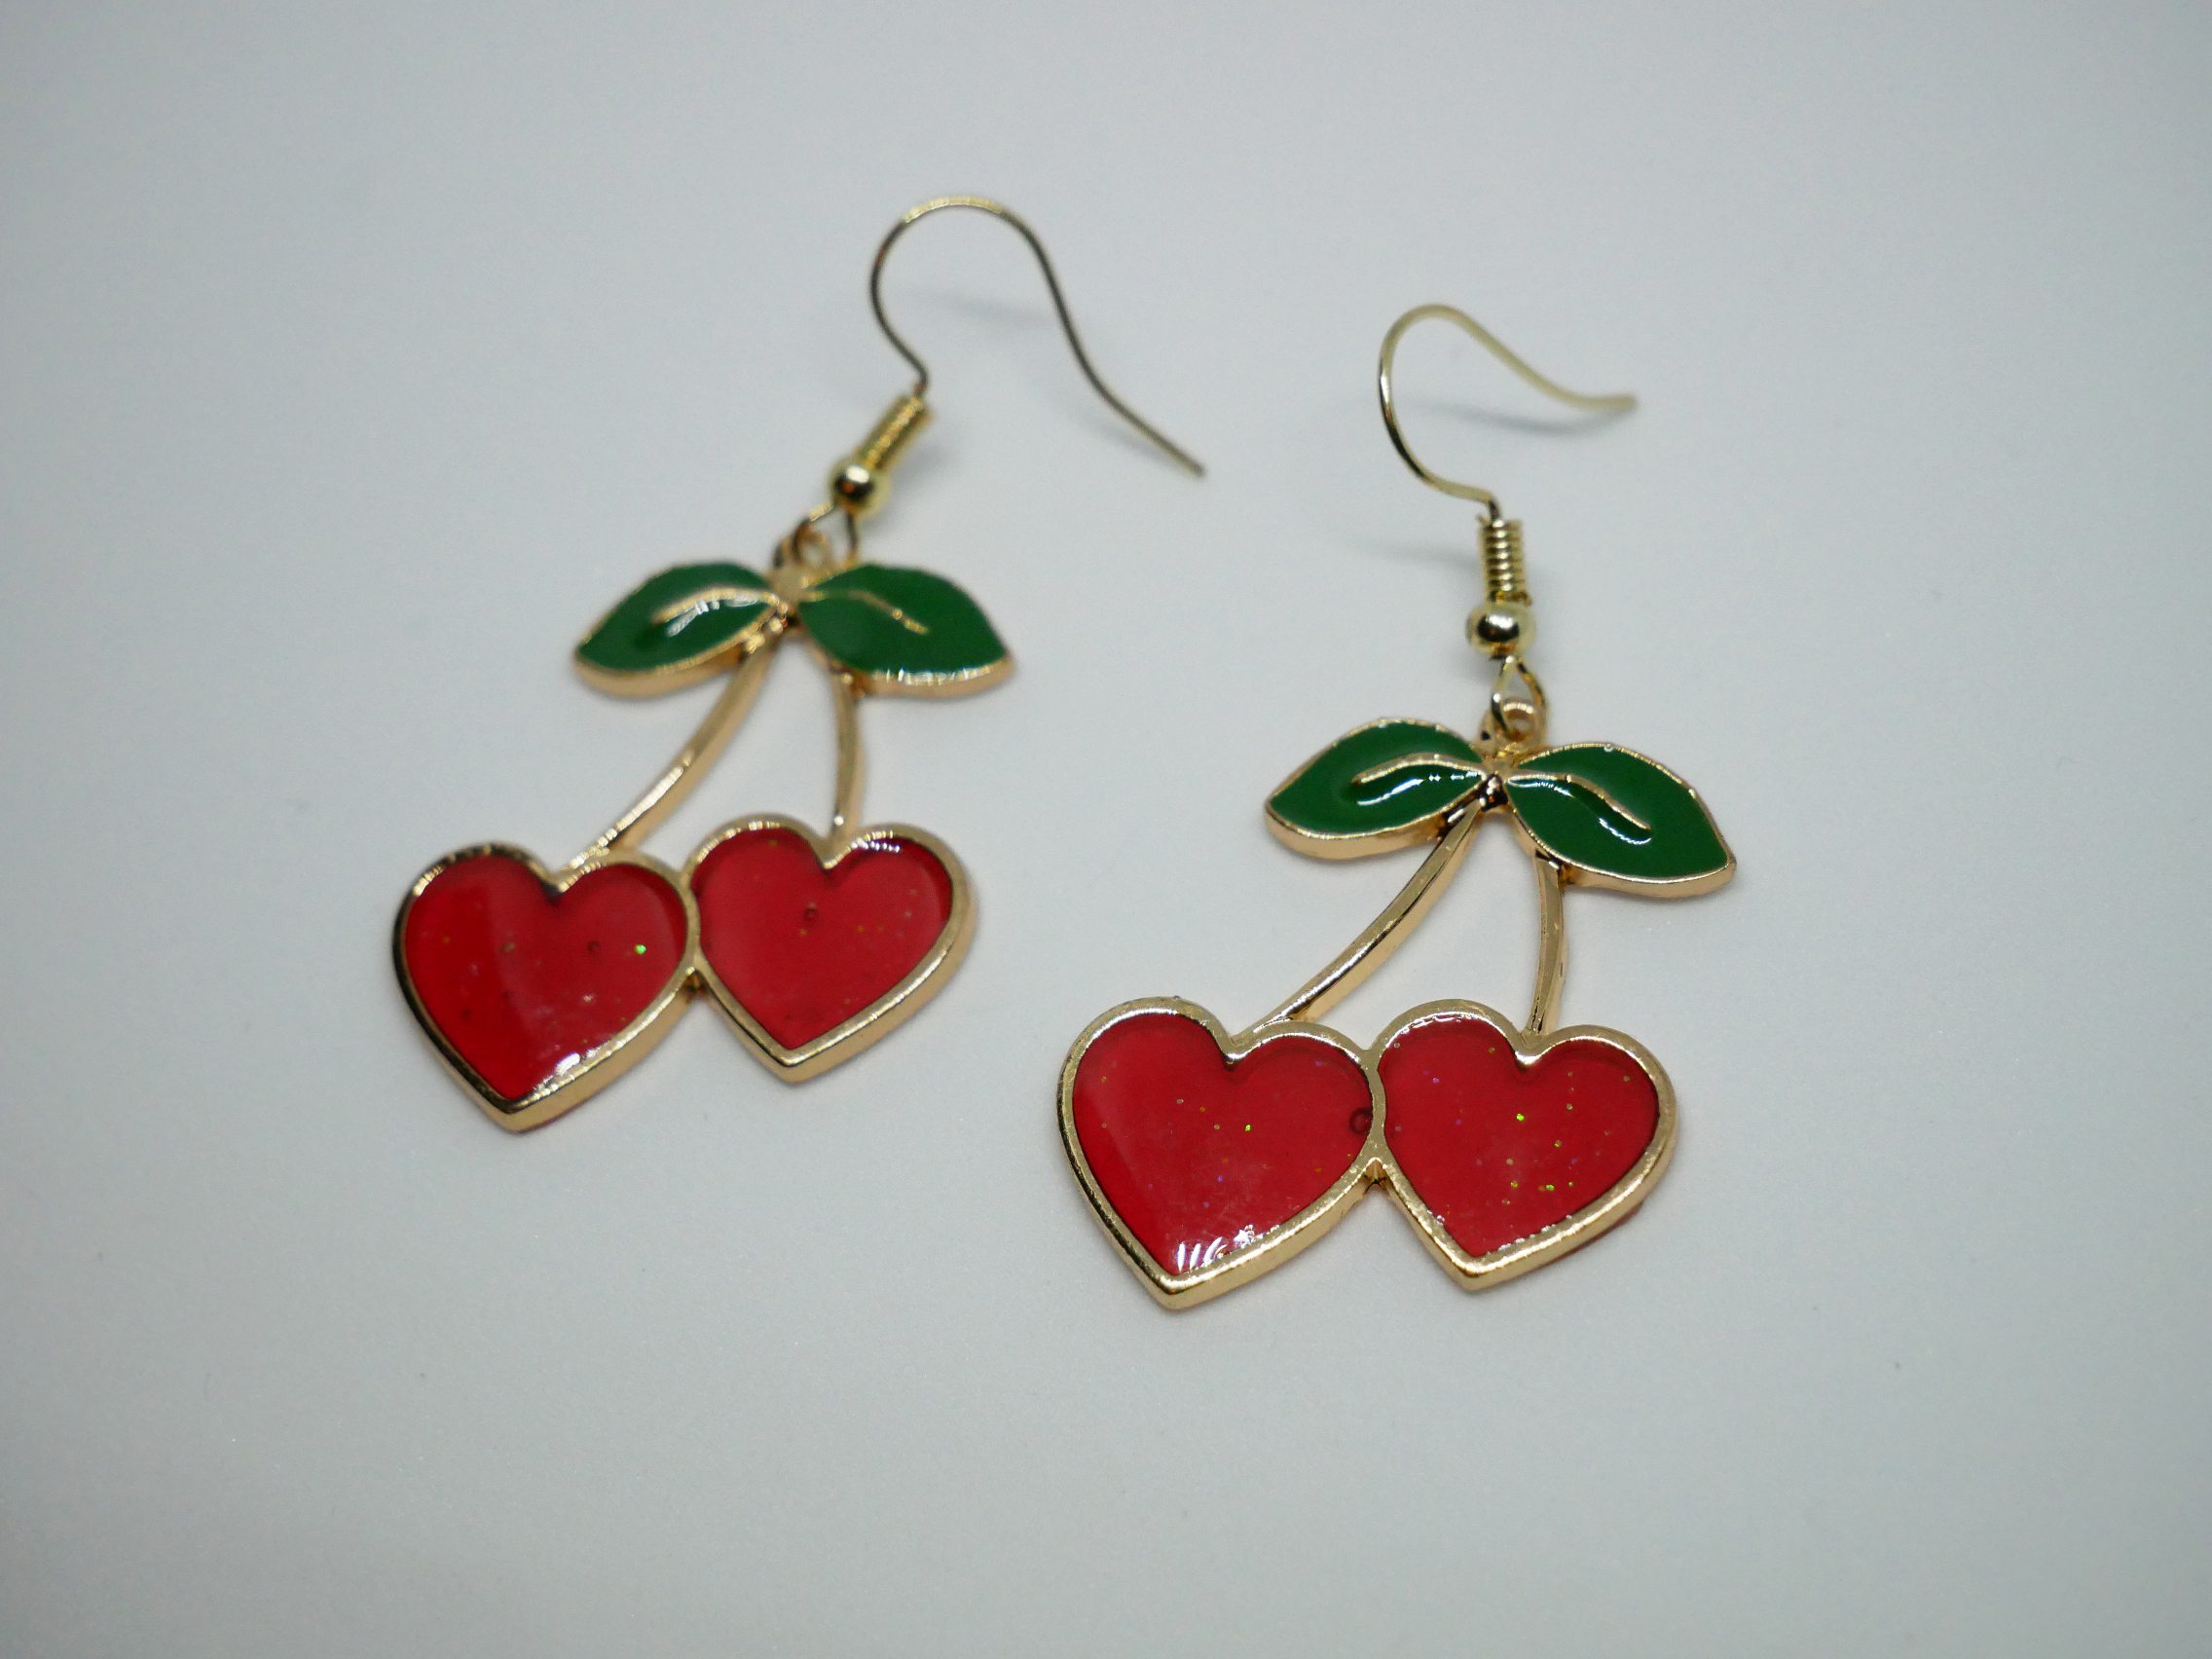 b508f165d0995a Cherry love earrings · Eyecandy · Online Store Powered by Storenvy